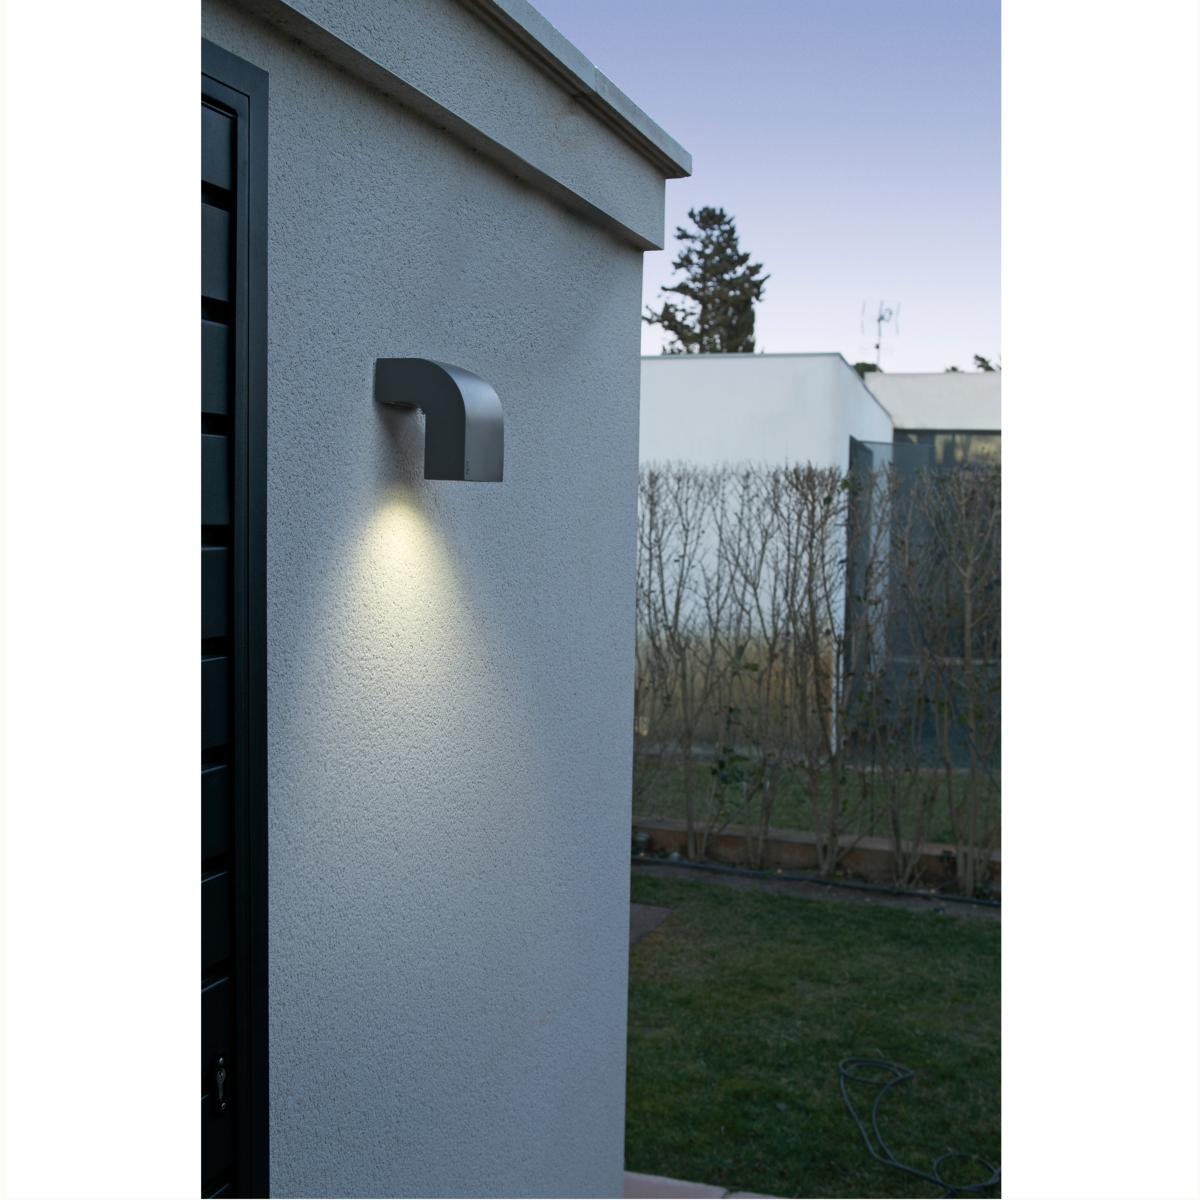 Applique Murale Exterieur Design Applique Exterieur Design Applique Extrieure Design Led